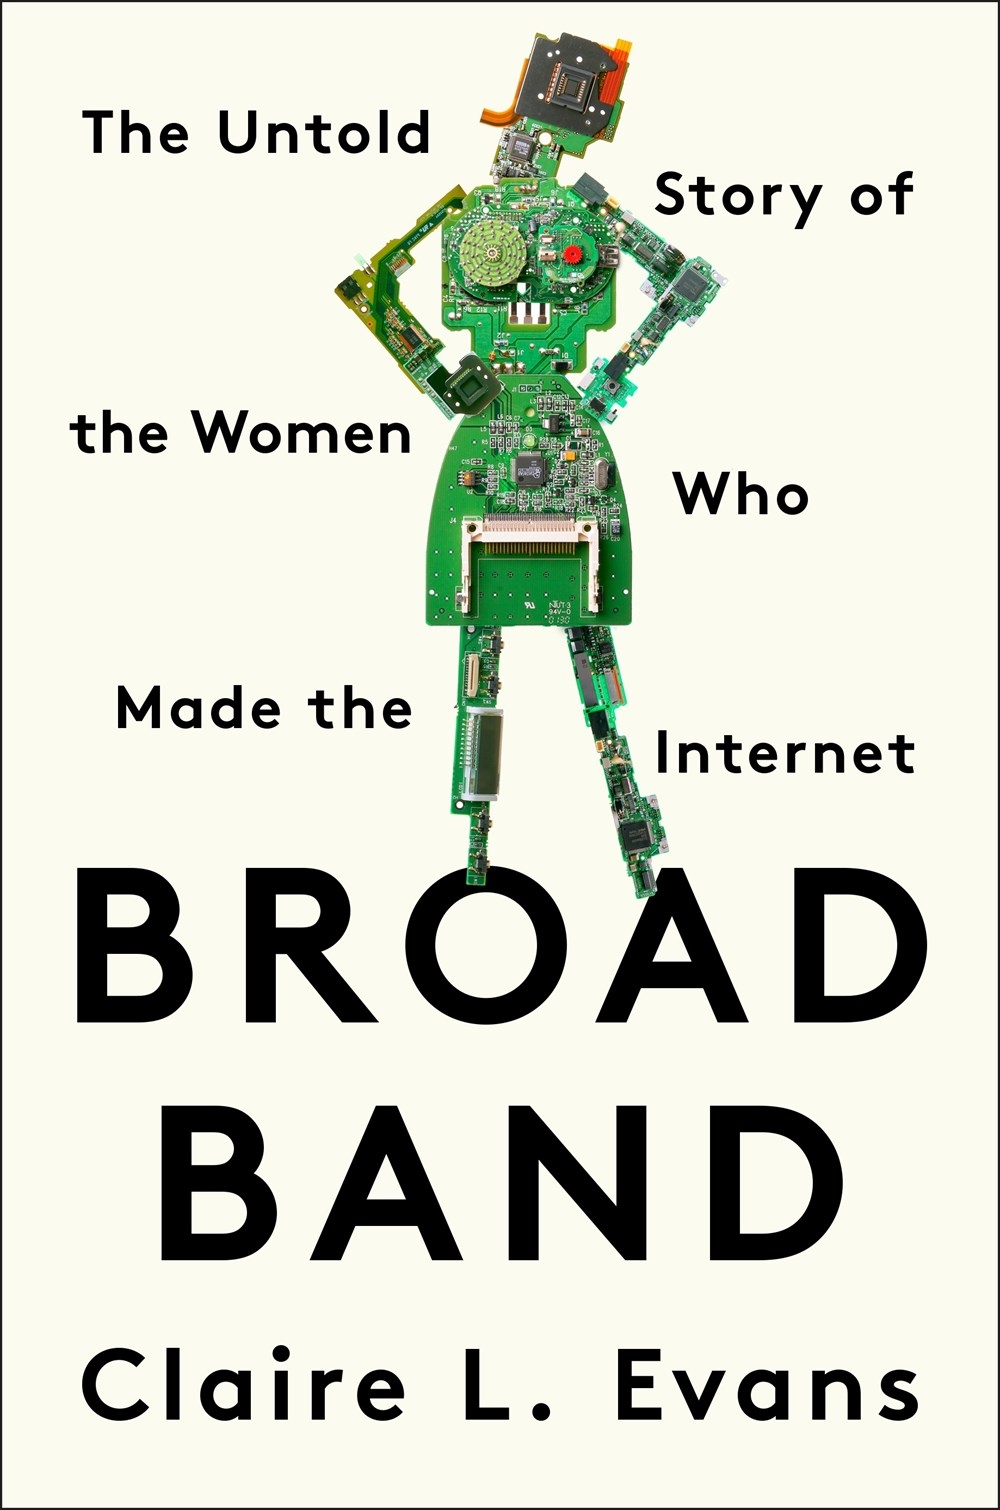 The Untold Story of the Women Who Made the Internet - Claire L. Evans